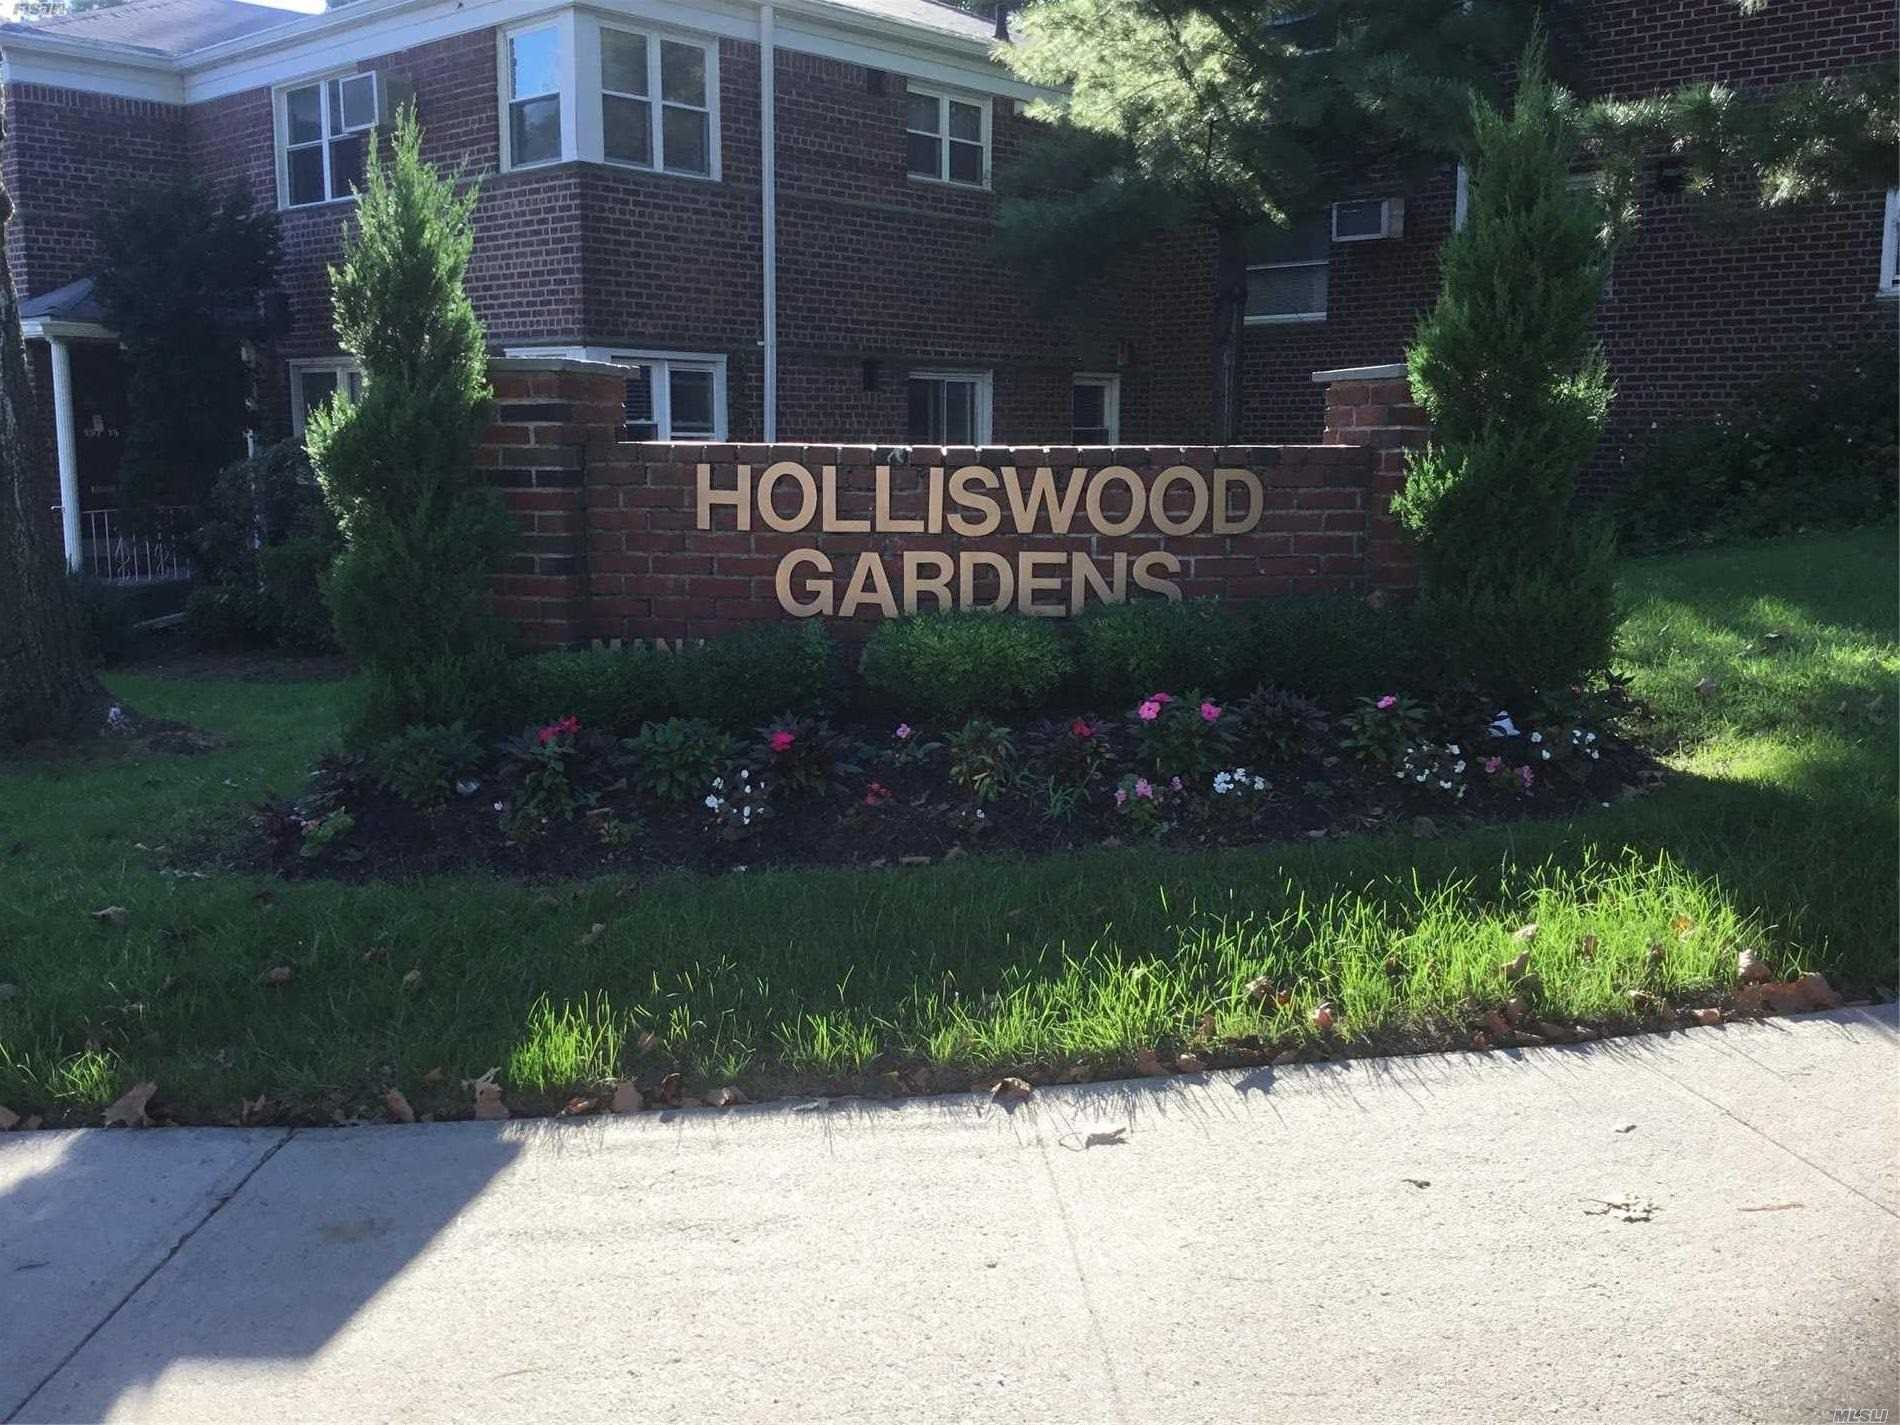 Beautiful 2 Bedroom Apartment Wood Floors Throughout. Carpet In Master Bedroom. Lots Of Closets, New Bathroom. Close To Transportation, Grand Central Parkway, Shopping Etc.